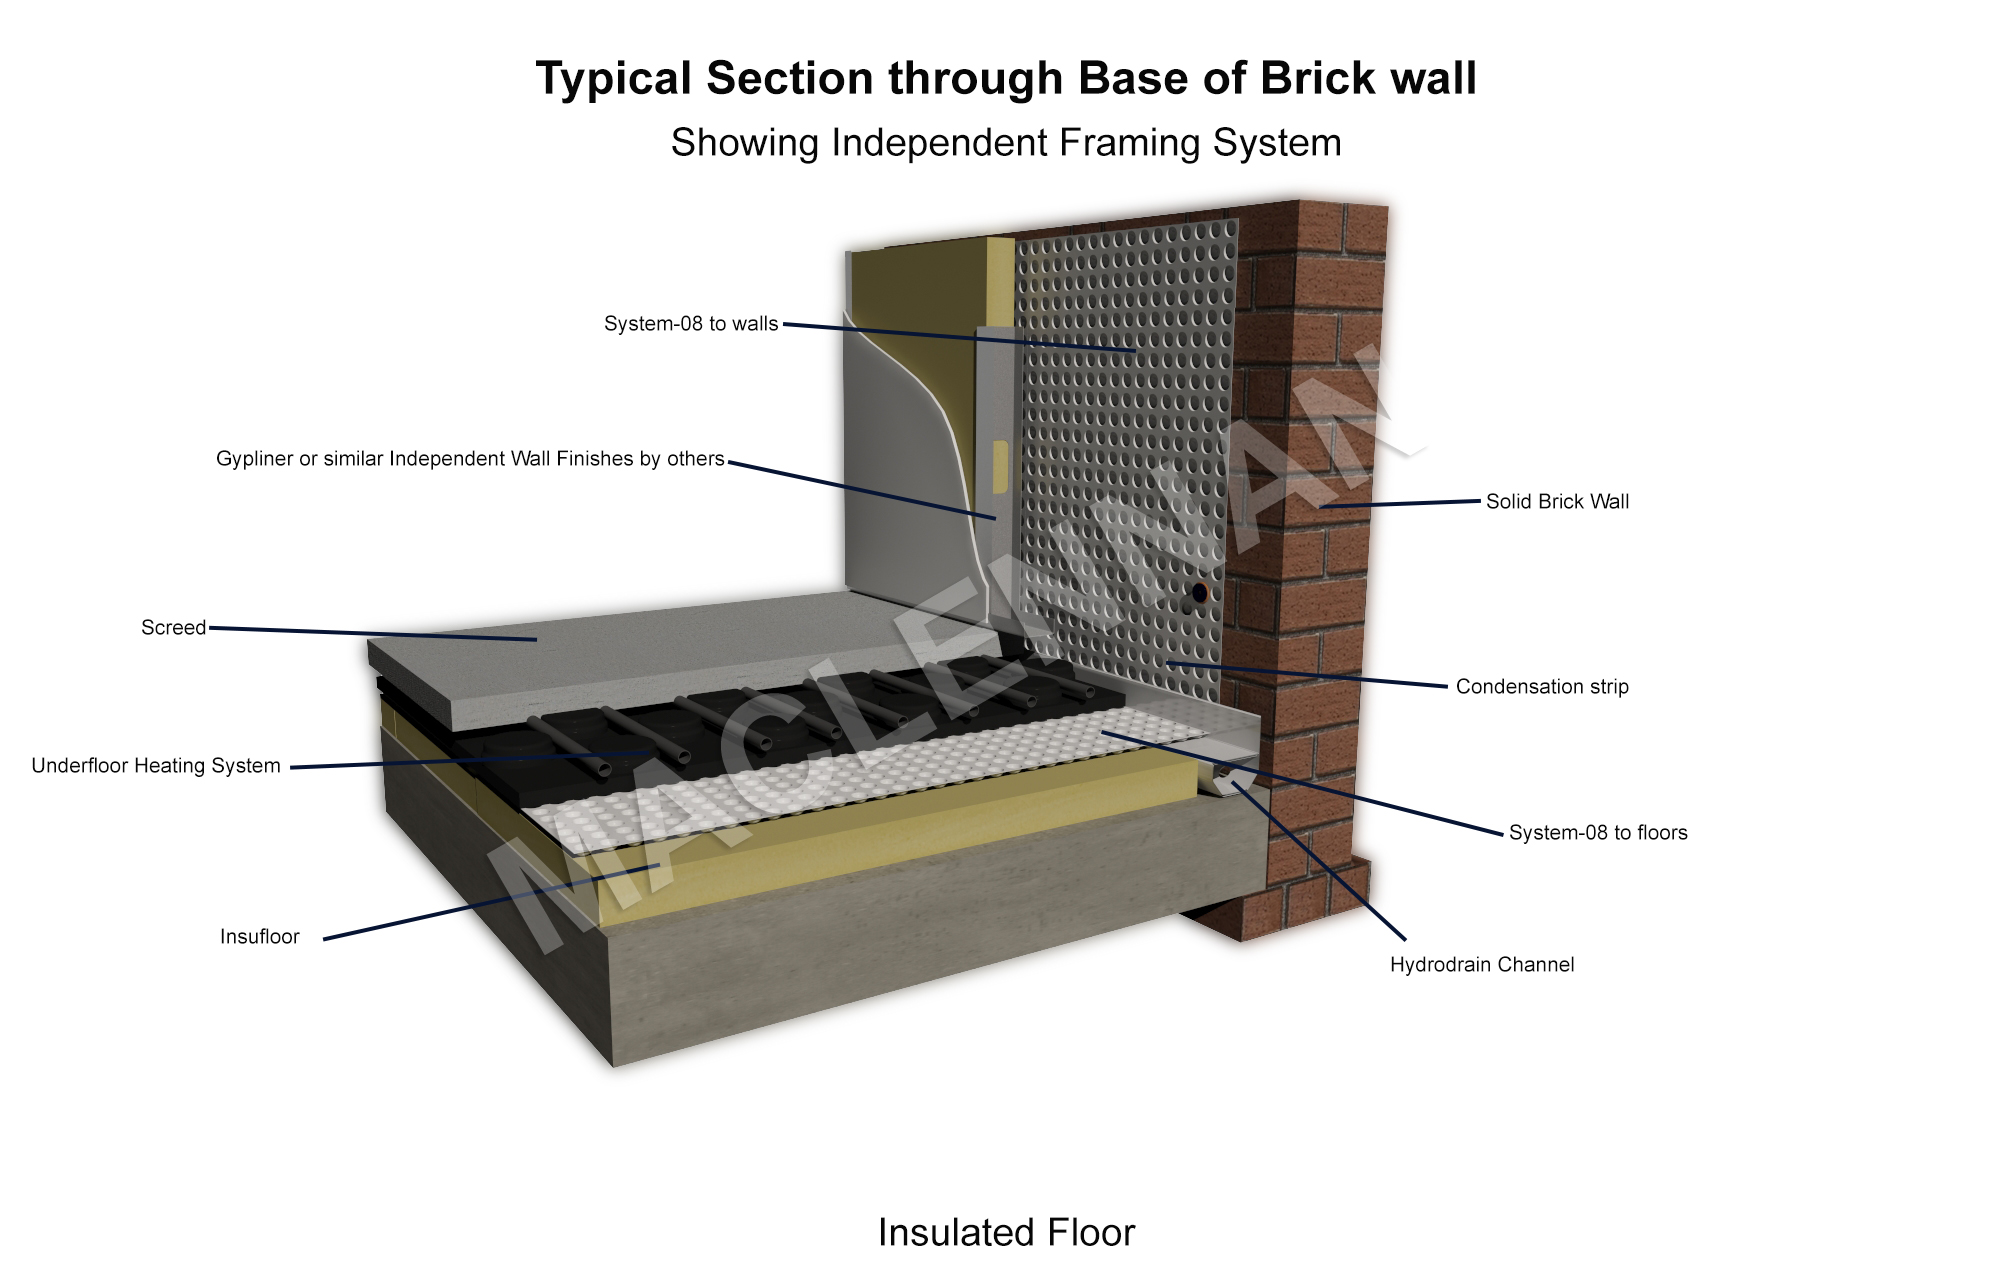 3D Drawing of Base of Brick wall new waterproofing membrane